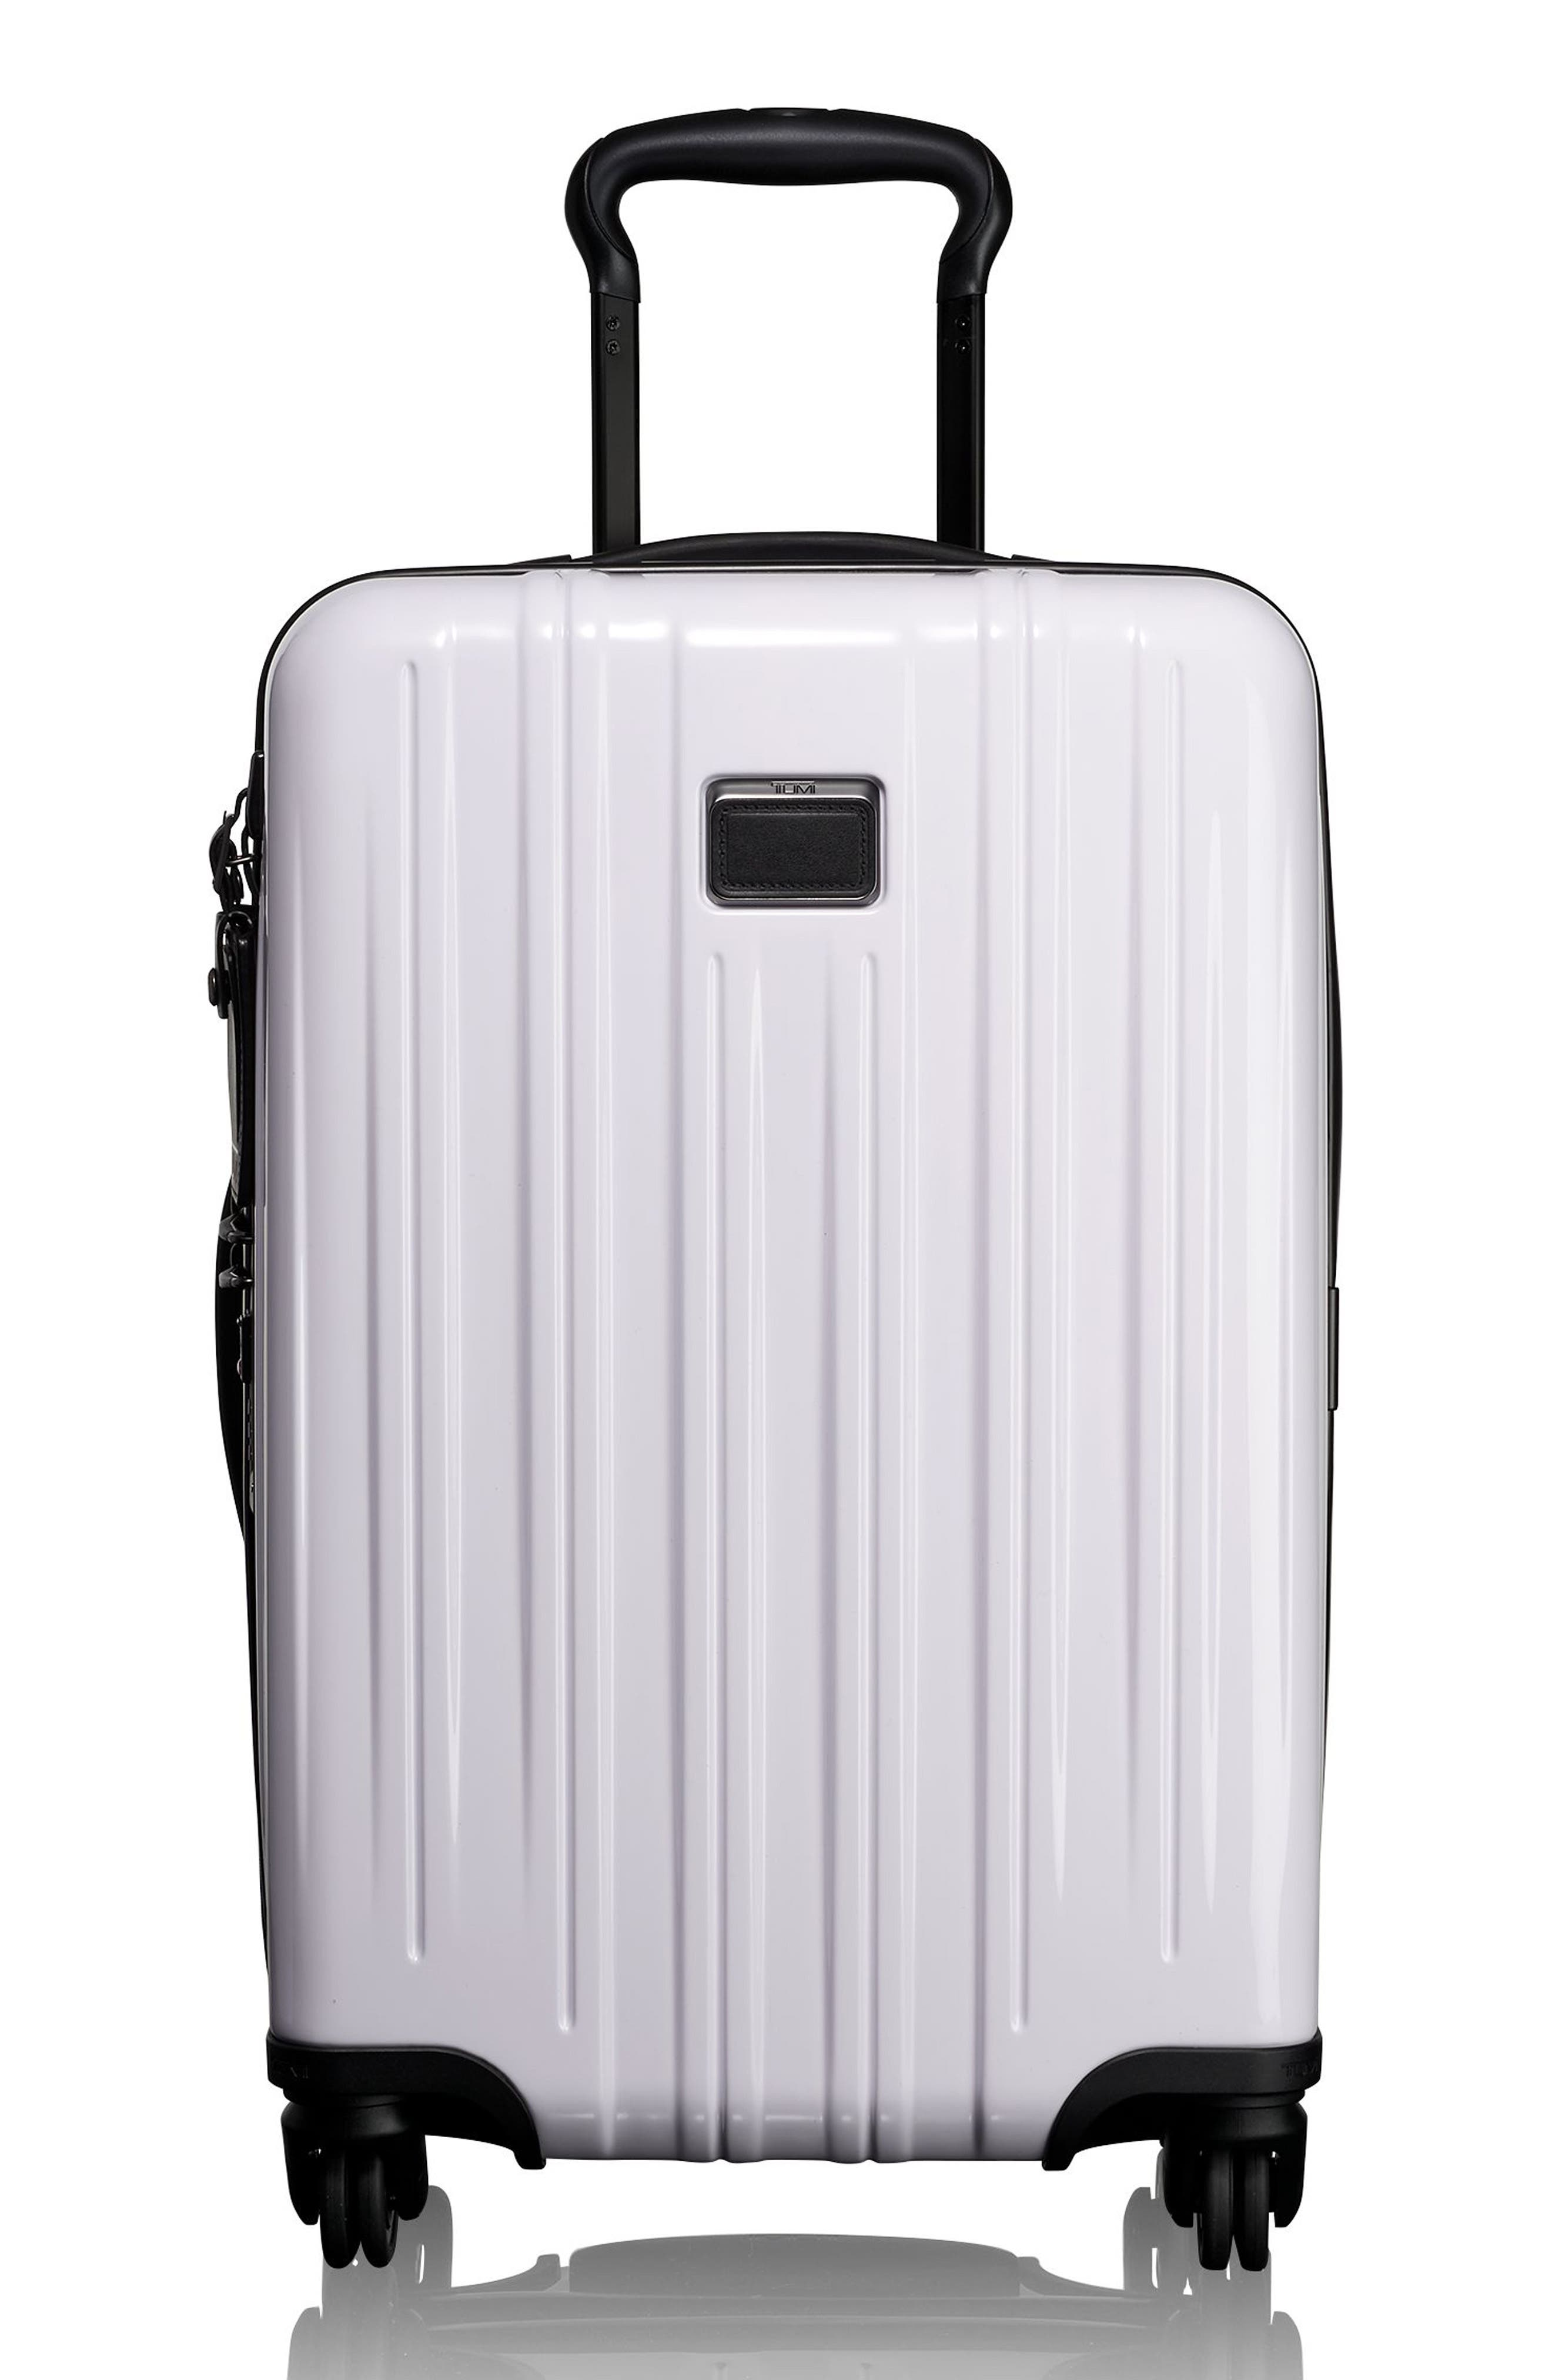 Tumi V3 International 22-Inch Expandable Wheeled Carry-On